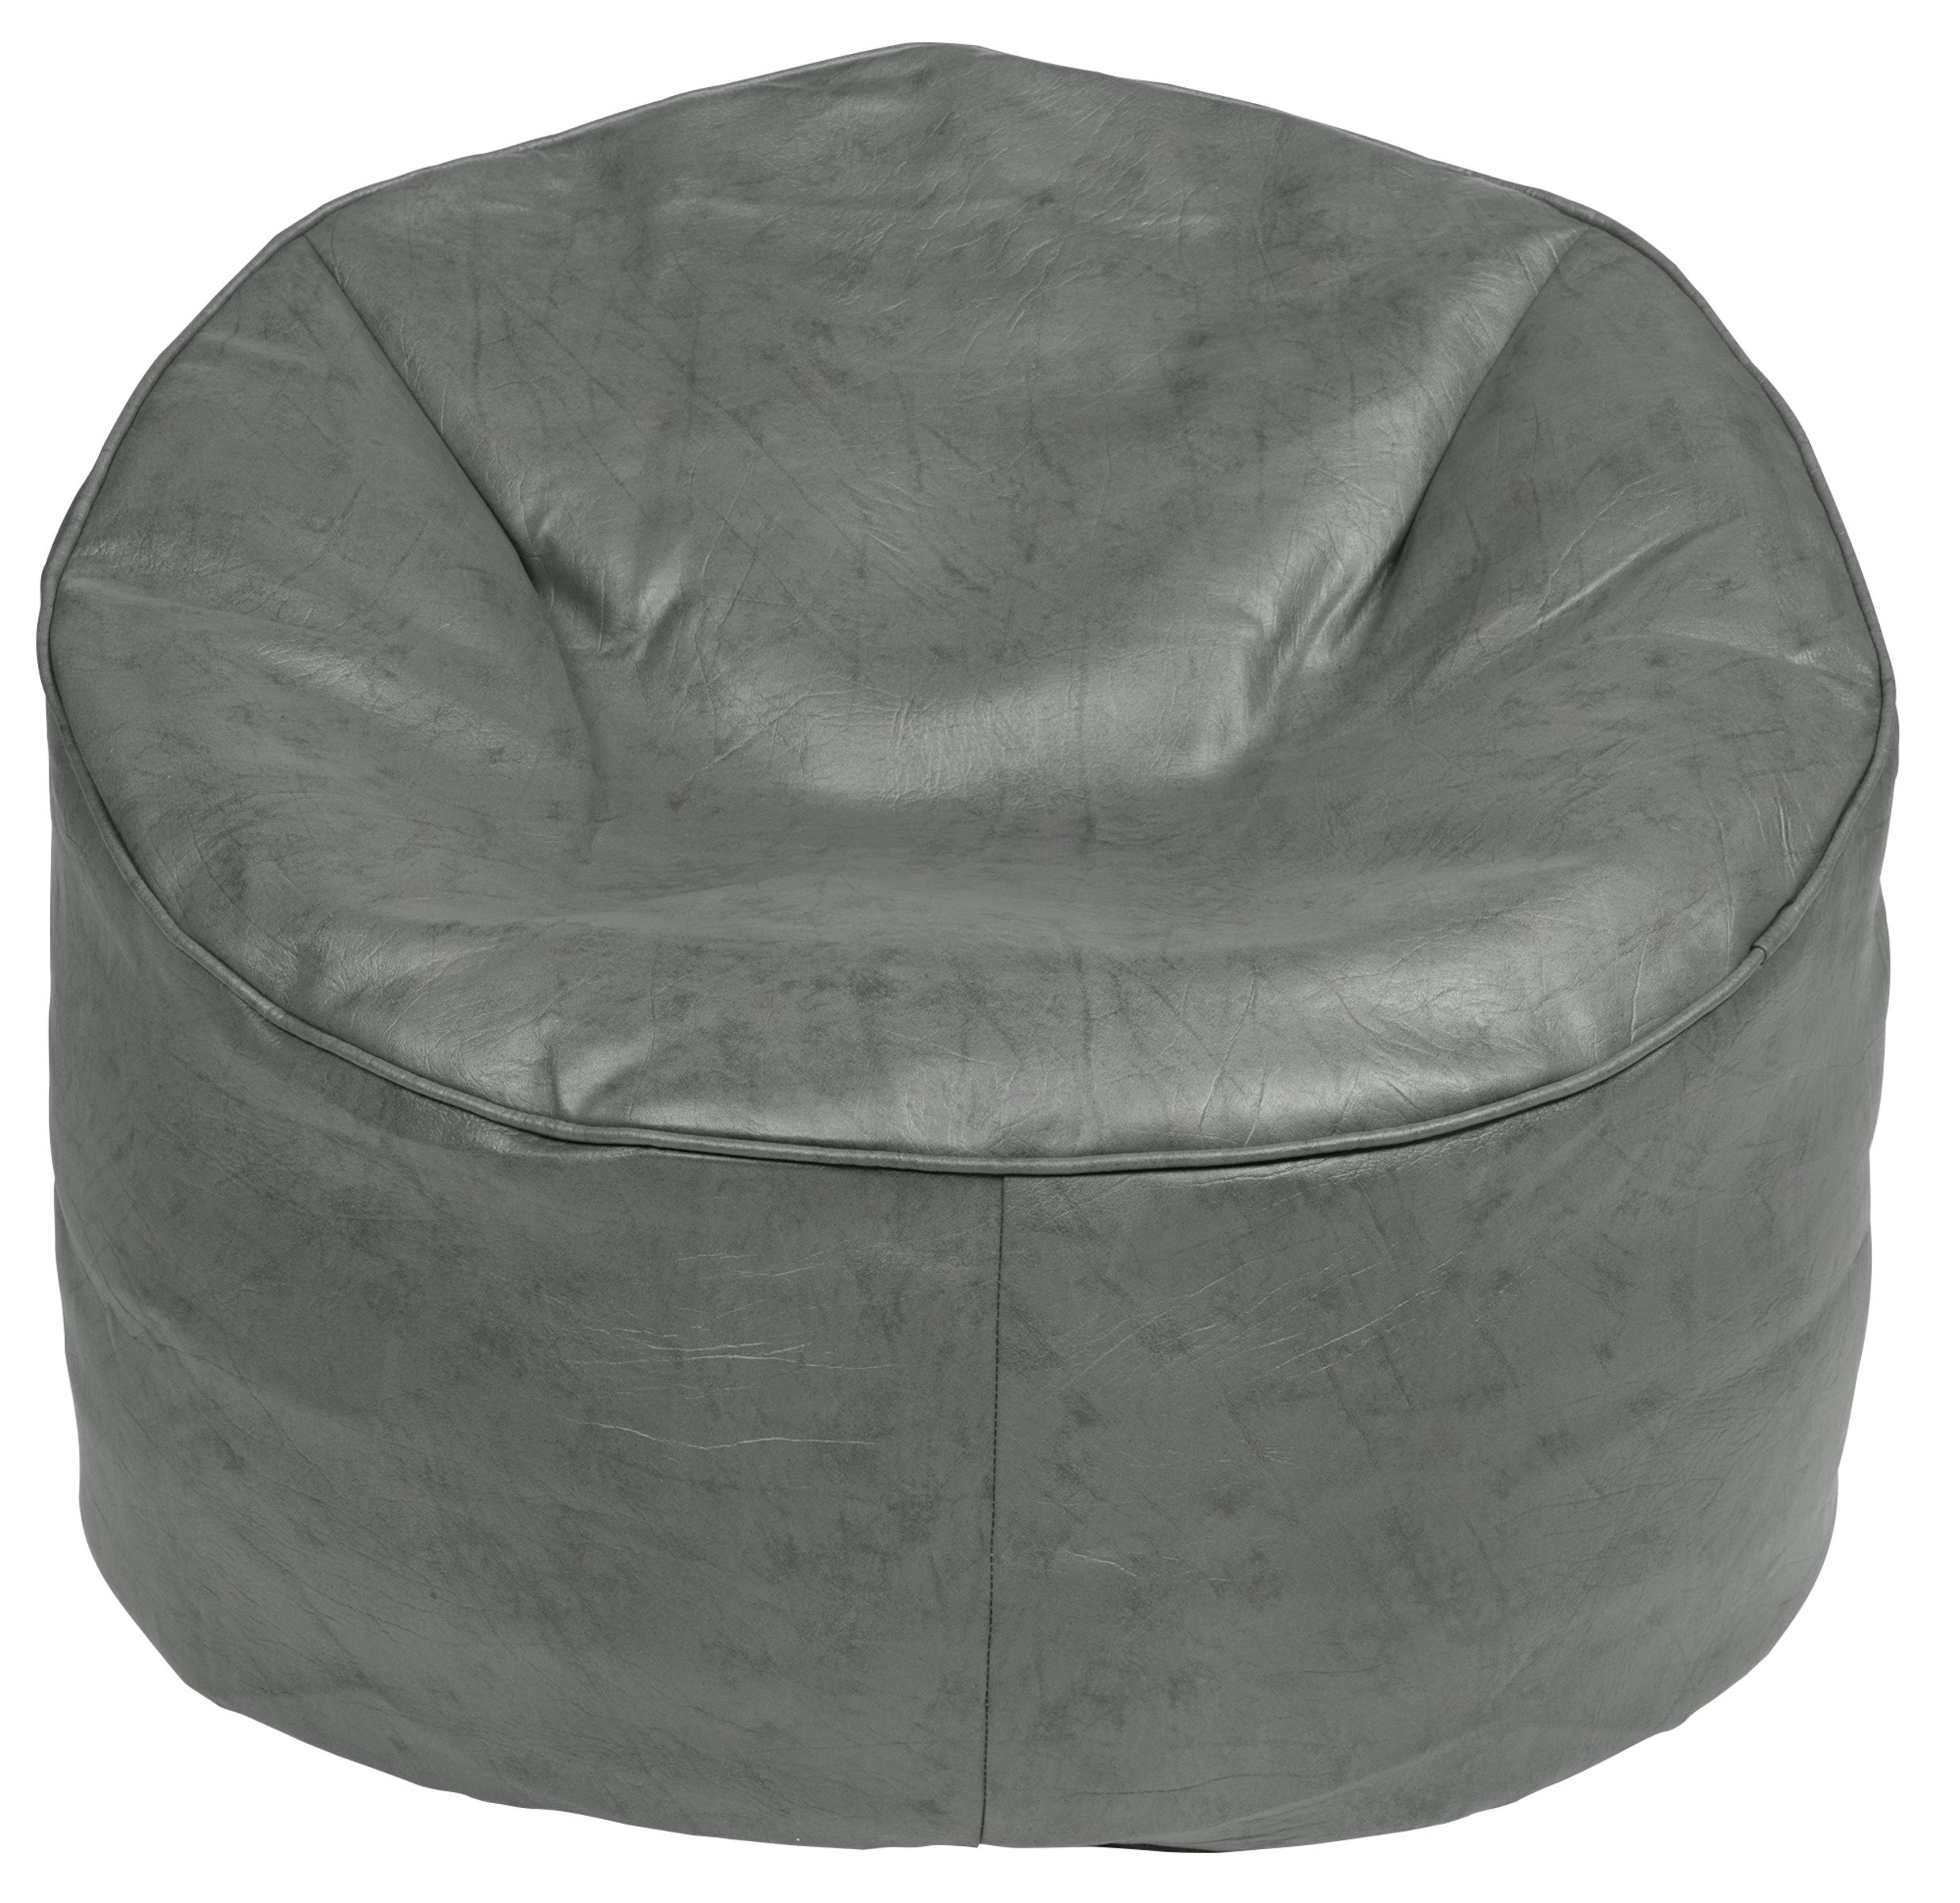 avengers bean bag chair velvet tufted beanbags chairs for kids adults argos home leather effect